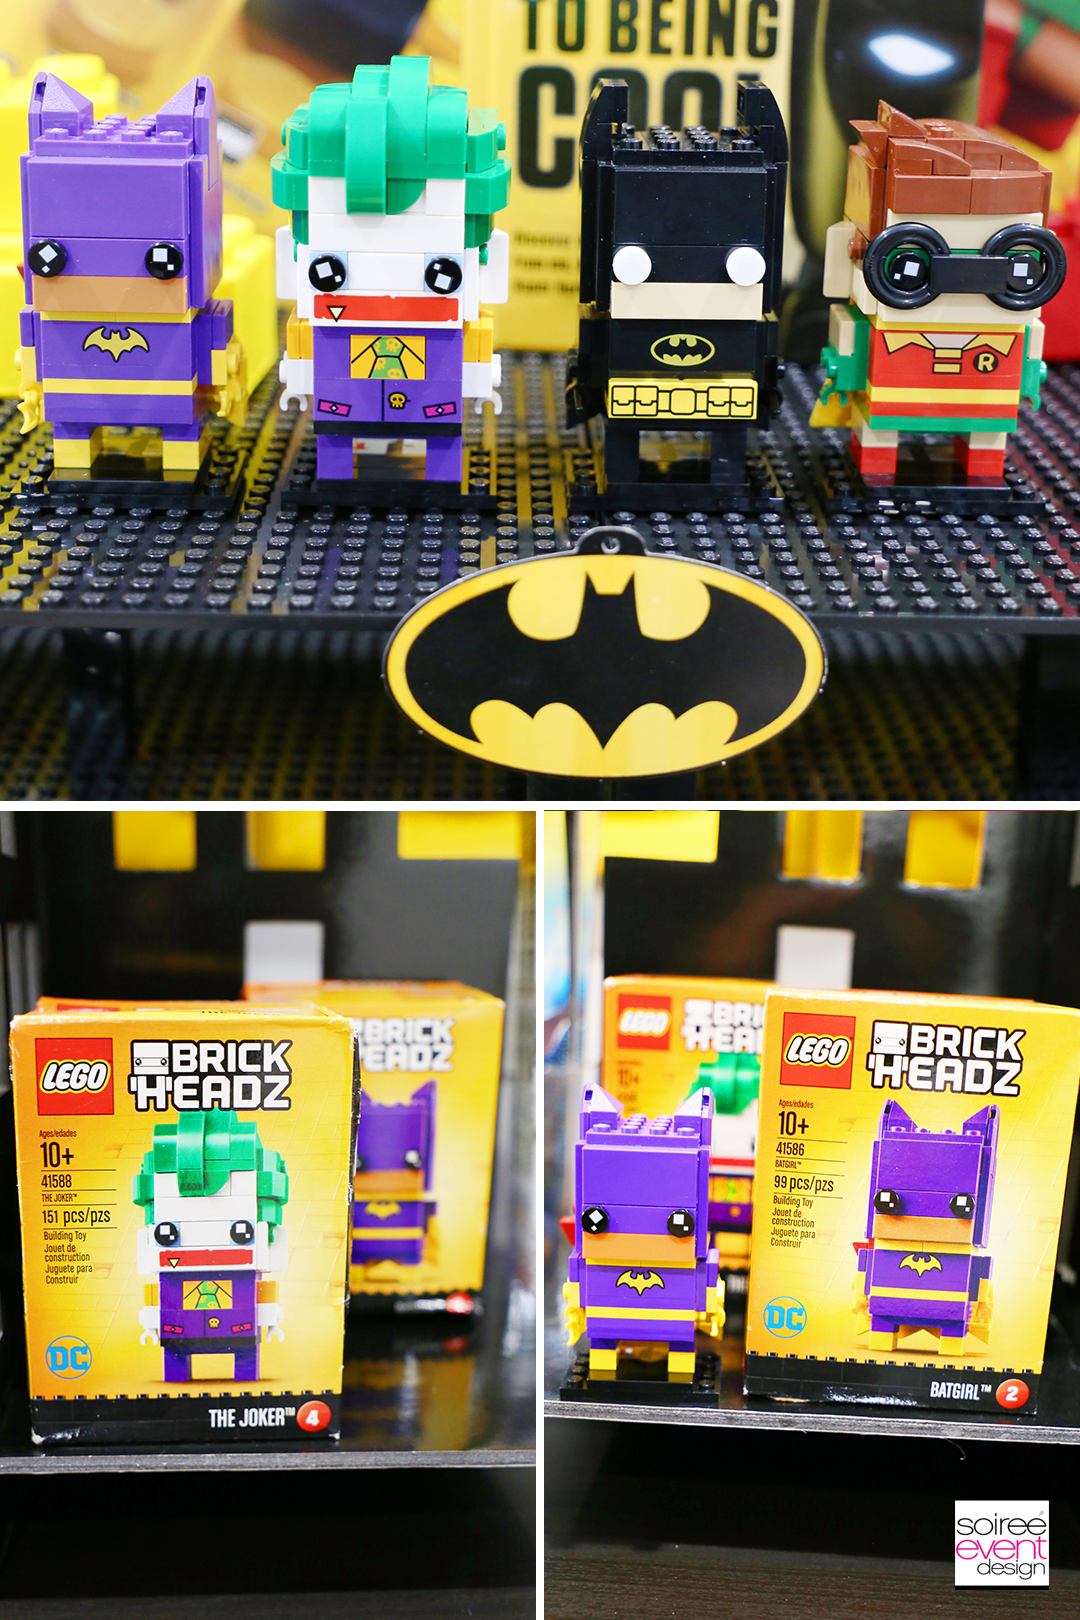 Lego Batman Party Favors Ideas - Lego Batman Brick Headz